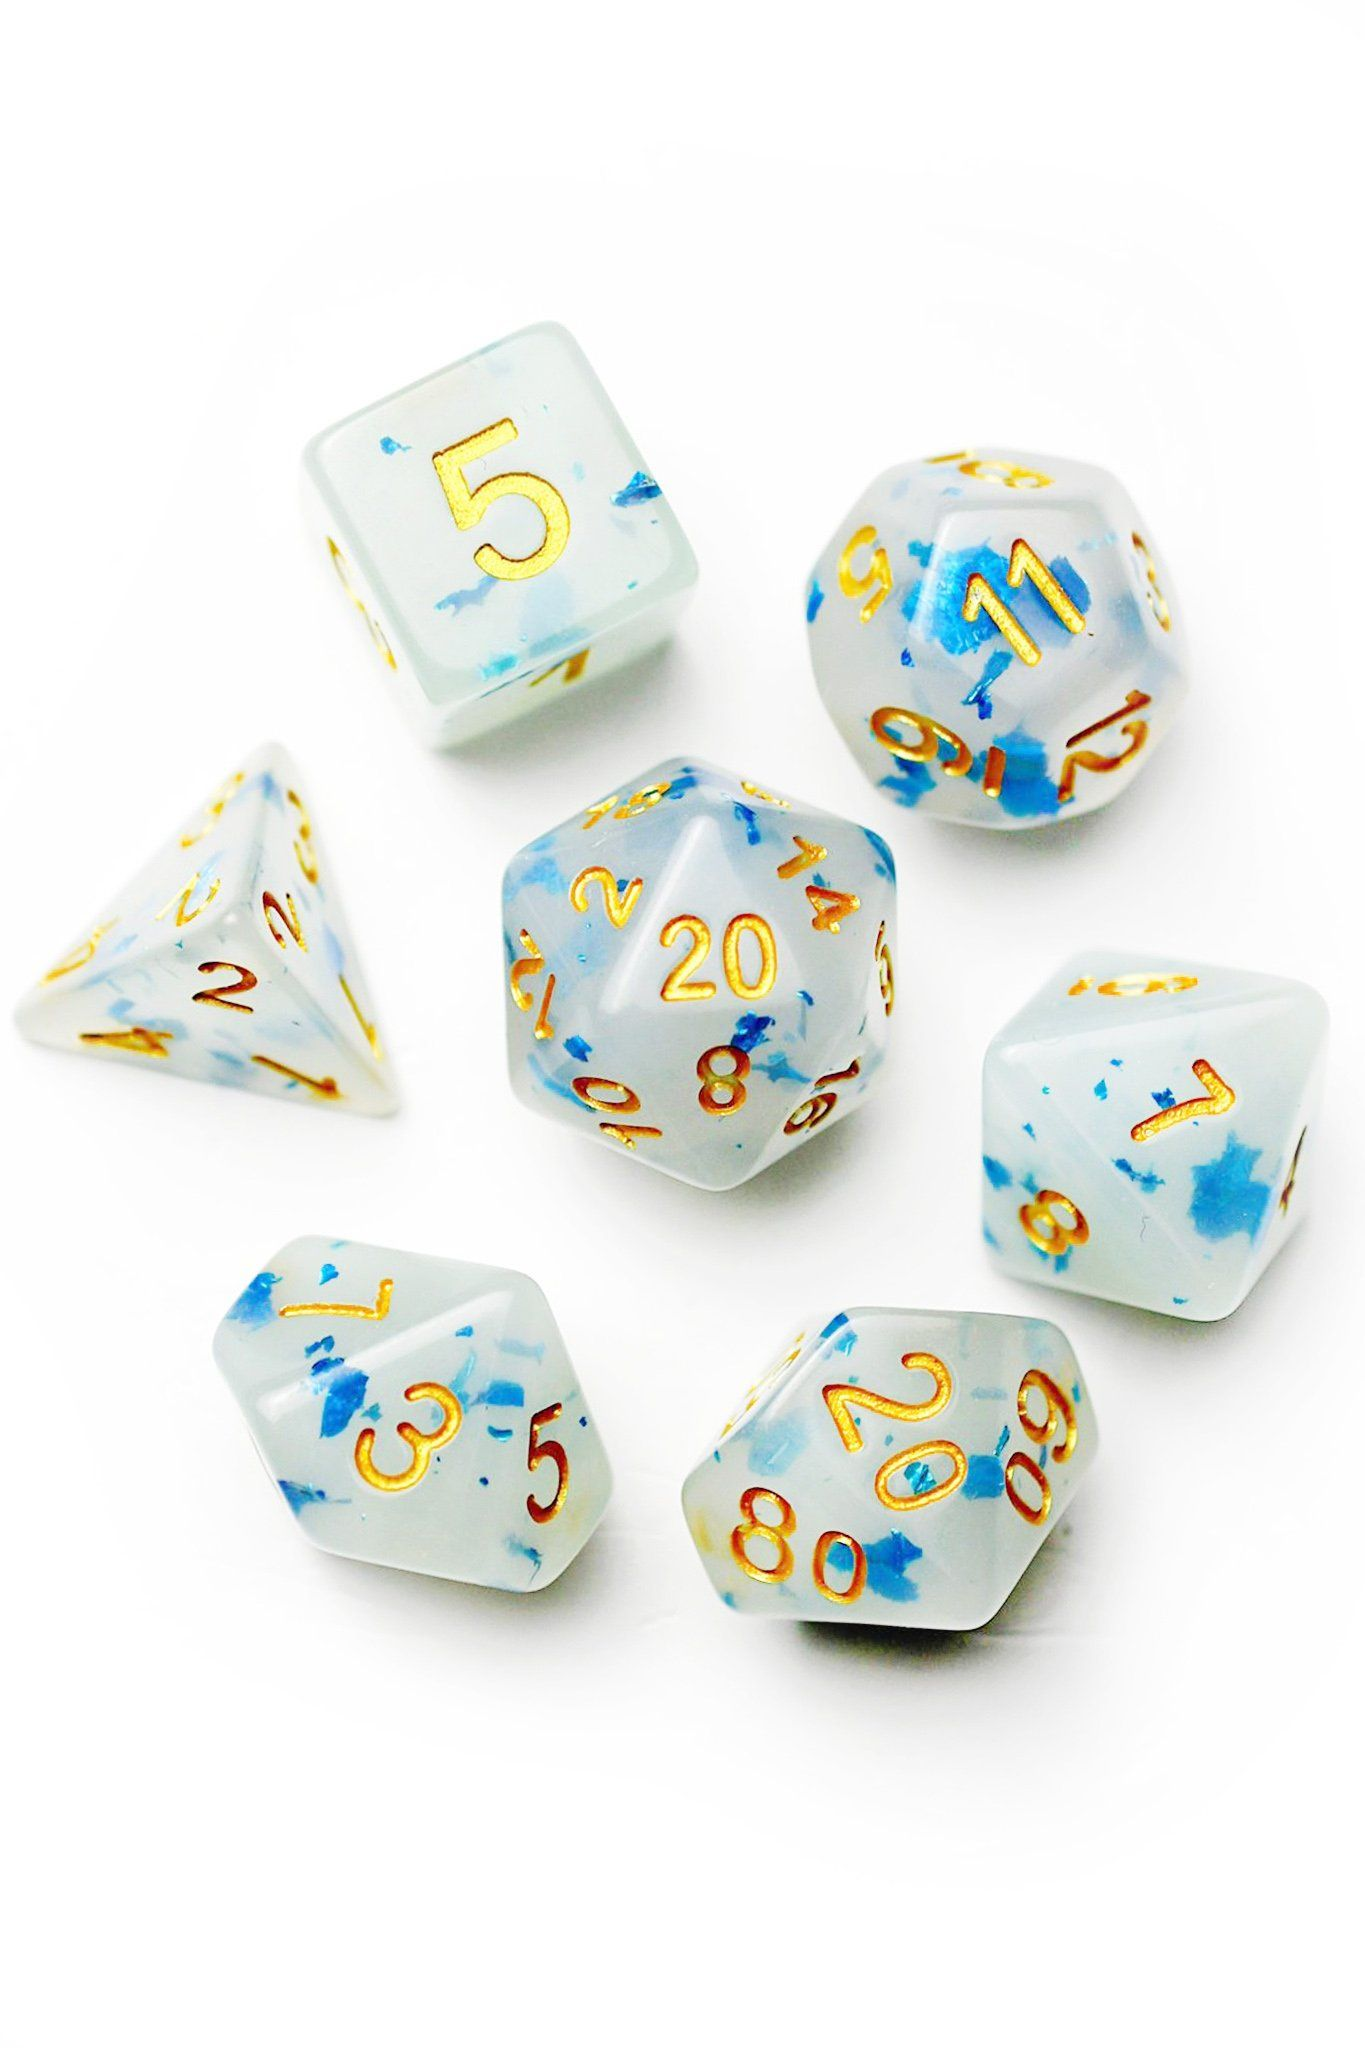 Ethereal SemiTranslucent Acrylic Dice Set in 2020